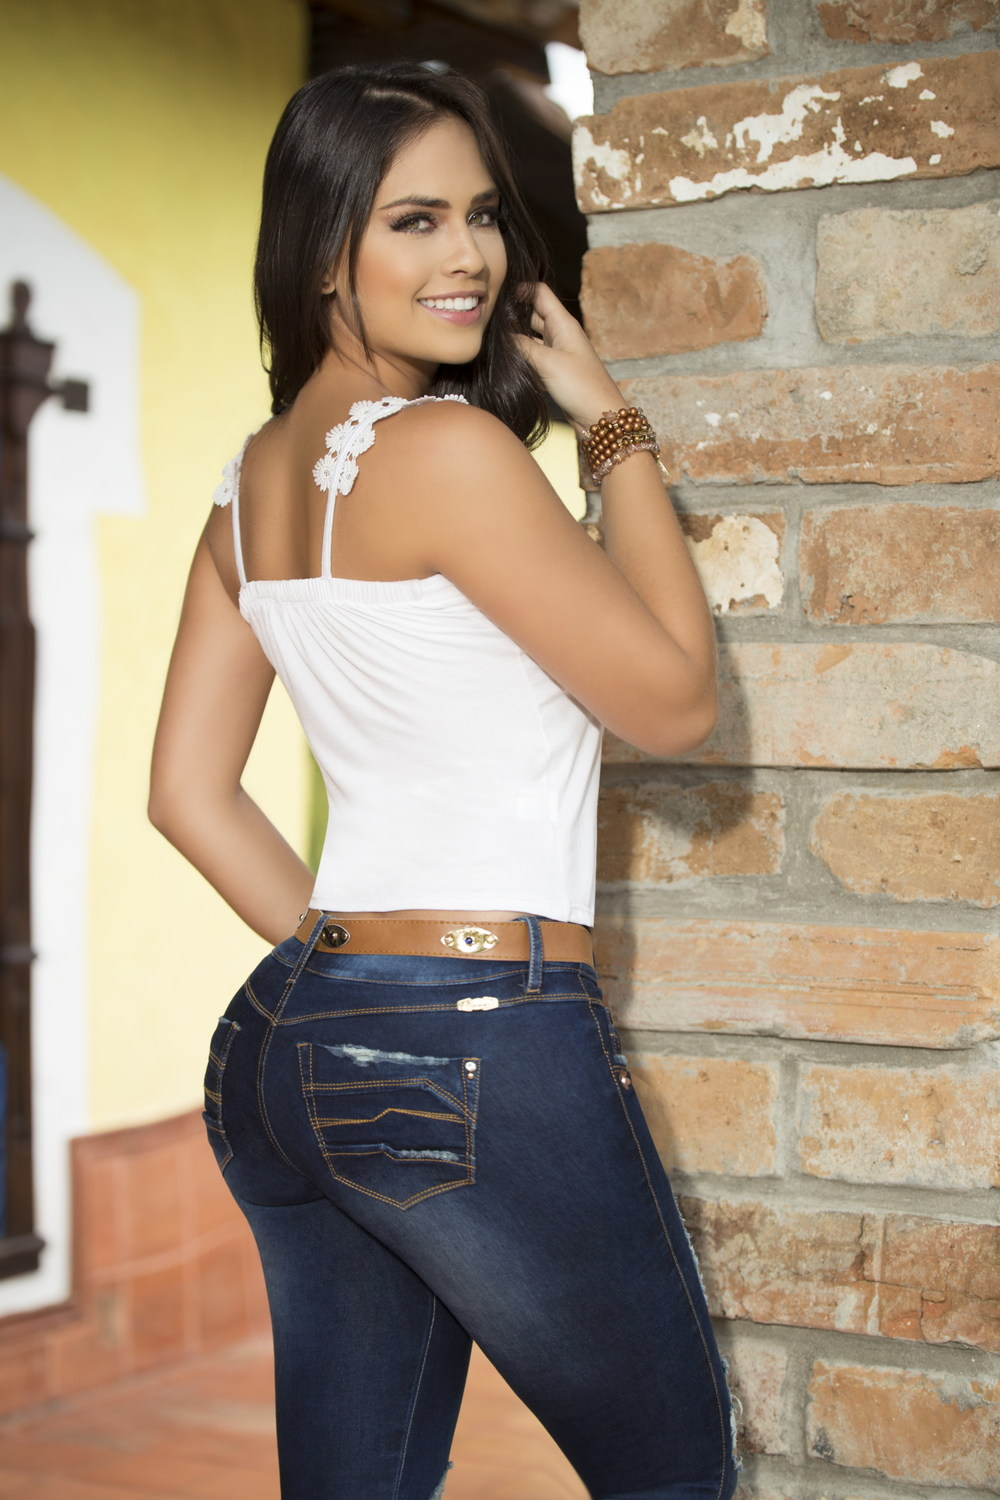 jeans-colombianos-online-M3090-2 - Colombia Jeans - Jeans ...